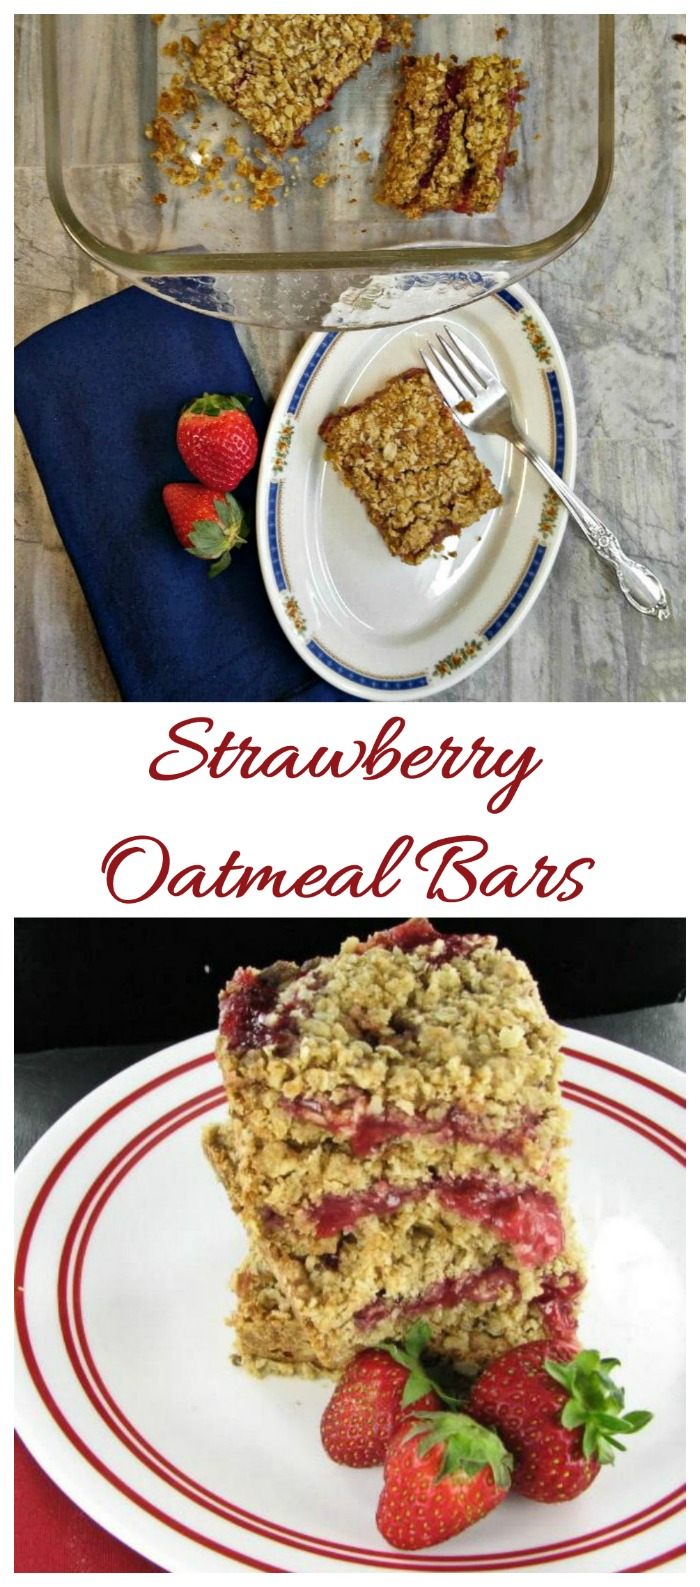 These fresh strawberry oatmeal bars have a buttery crust and topping and delicious sweet strawberry filling.